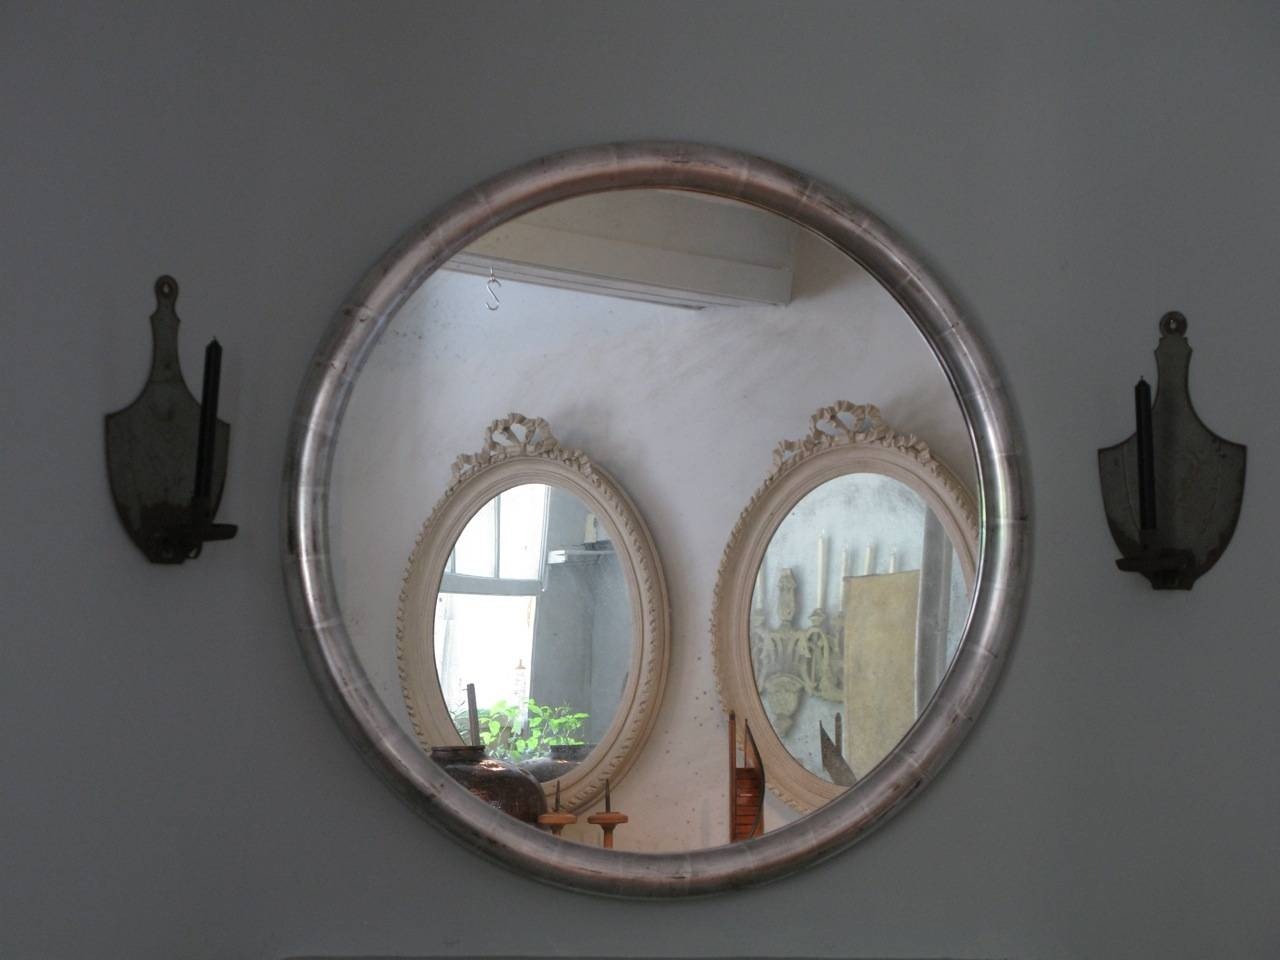 Large Round Silver Mirror 57 Trendy Interior Or Design Wall throughout Round Large Mirrors (Image 13 of 25)